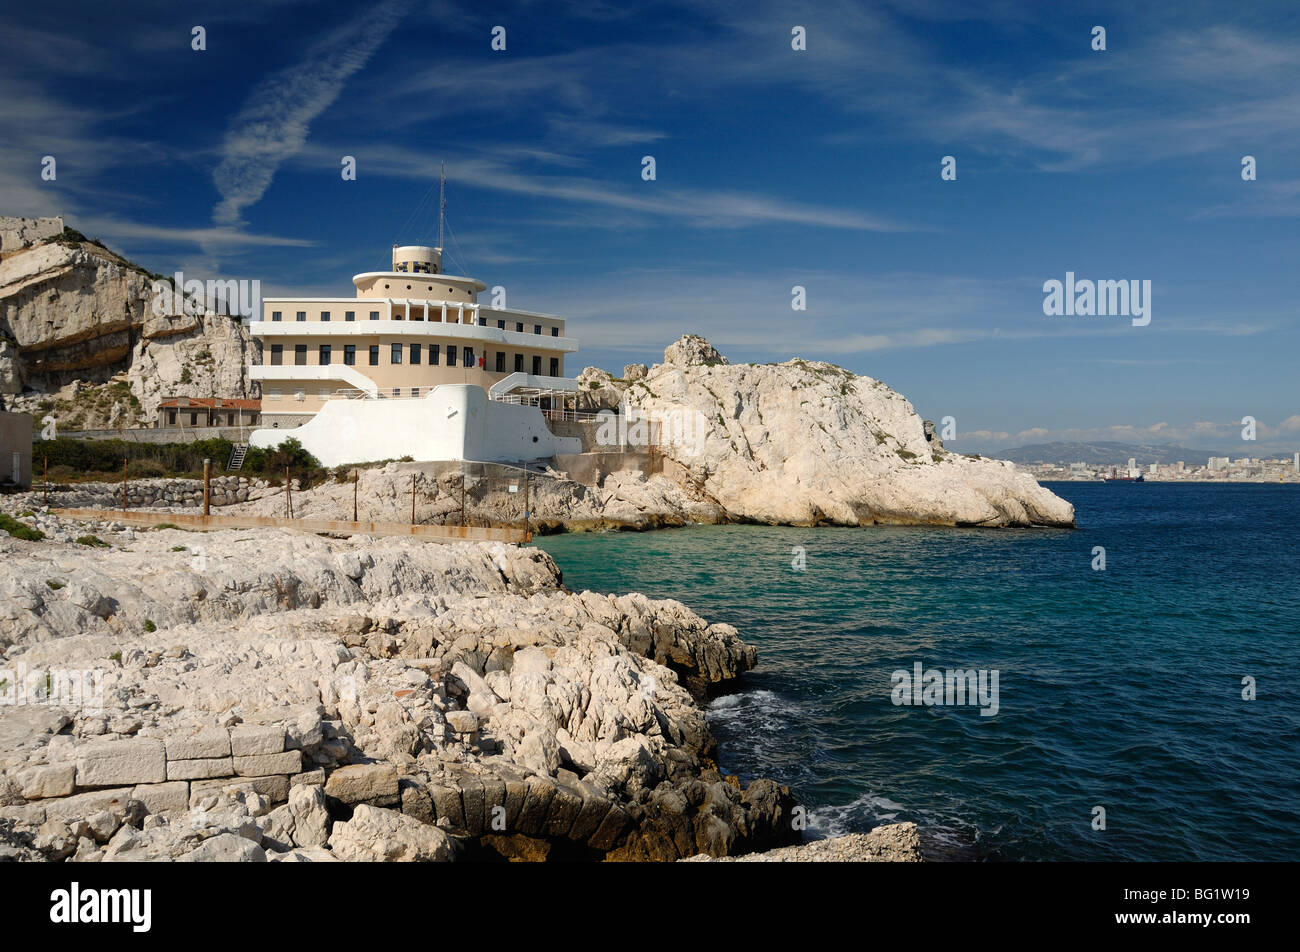 Boat-Shaped Pilotage Station in Shape of Ship or Boat on Ratonneau Island, Frioul, Marseille or Marseilles Bay, - Stock Image